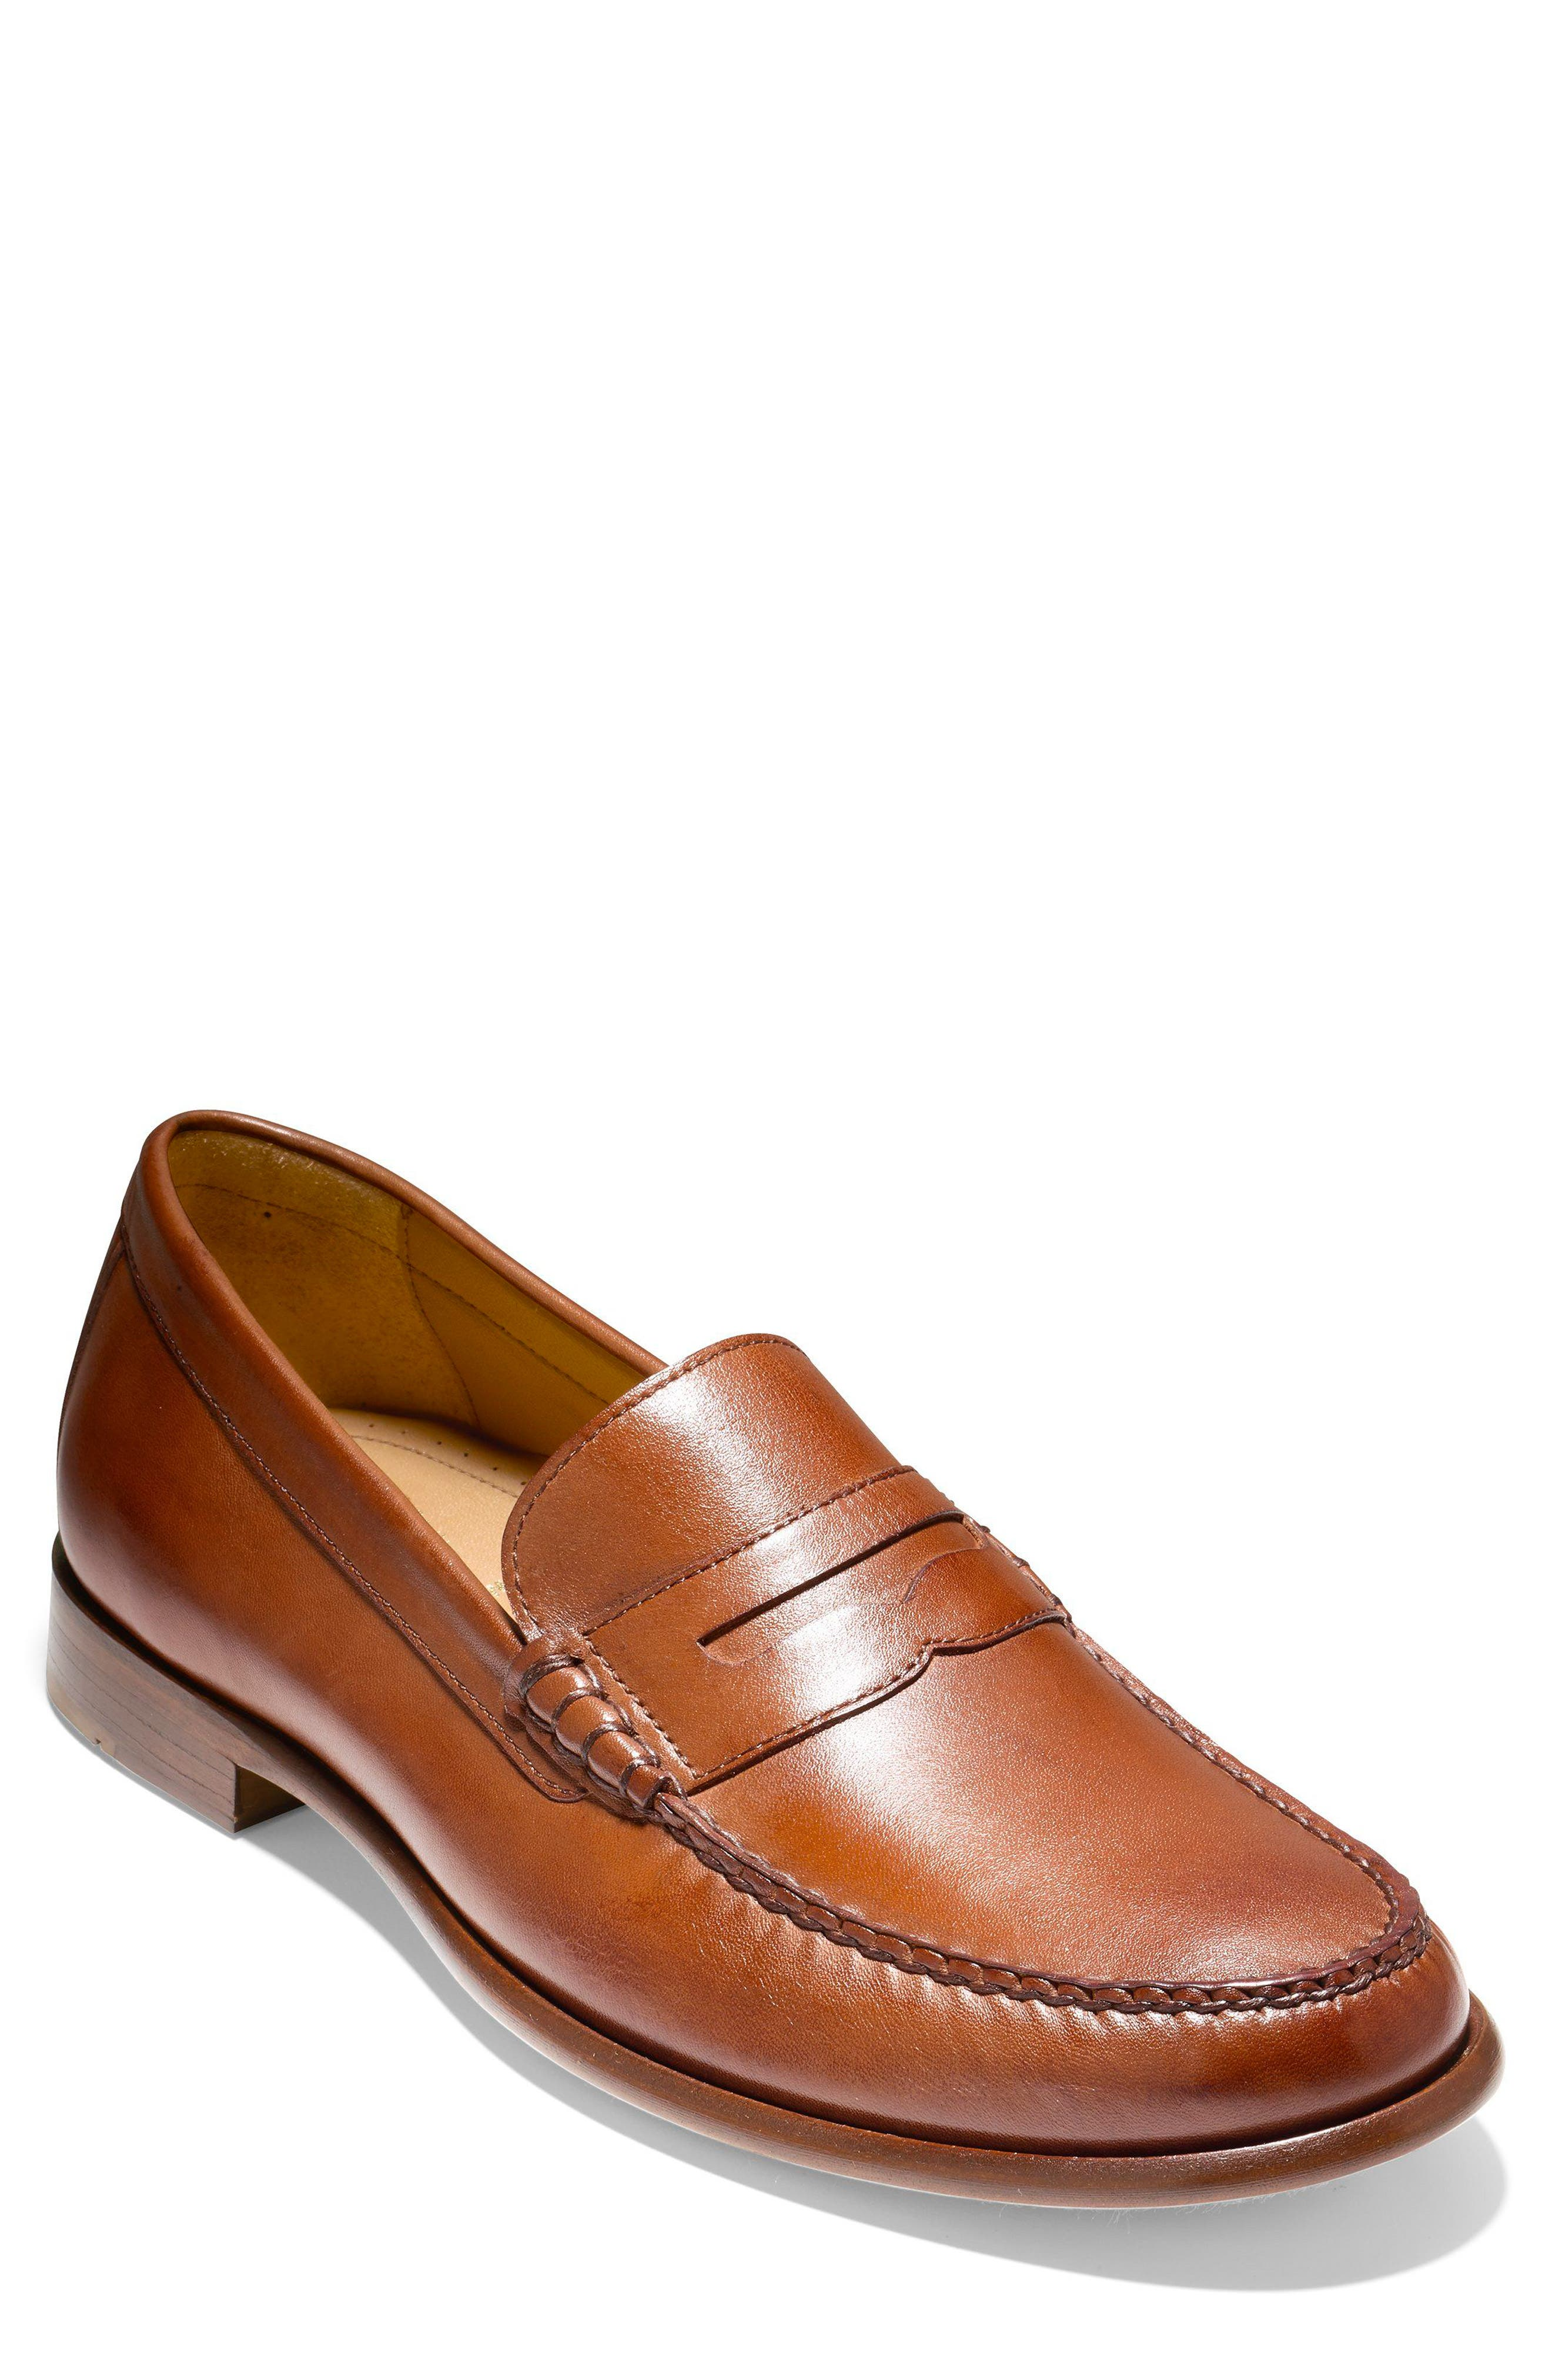 Pinch Penny Loafer,                         Main,                         color, 200